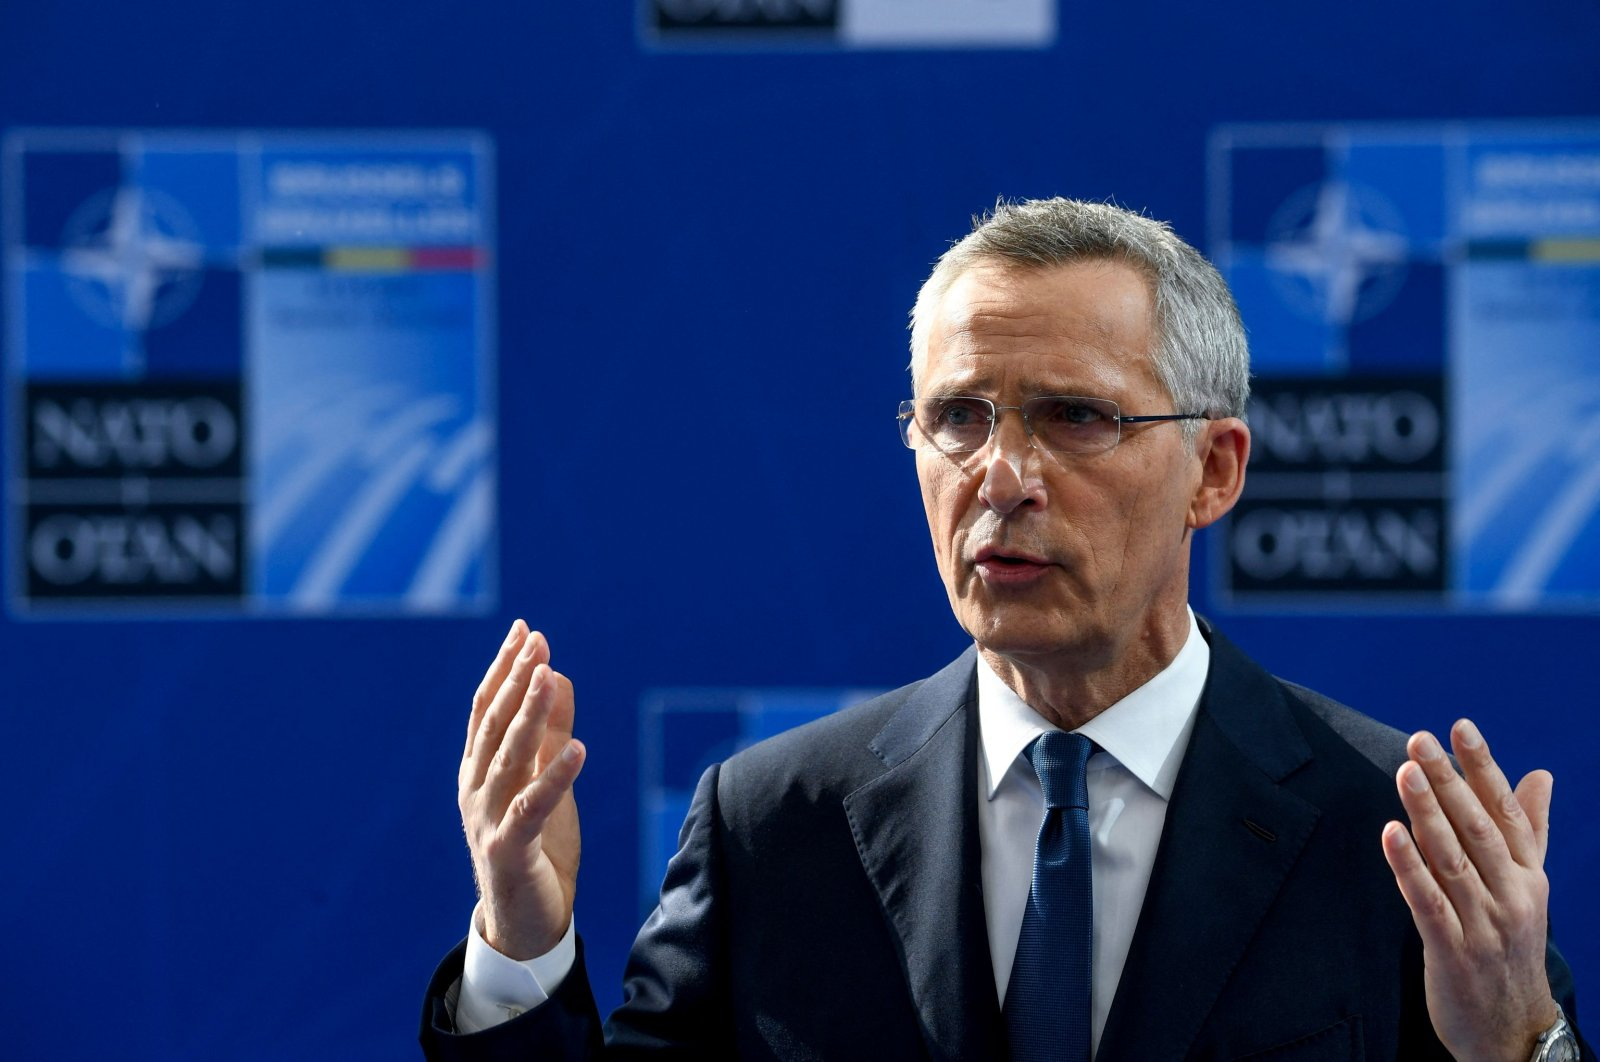 NATO Secretary-General Jens Stoltenberg speaks to the press upon his arrival to the NATO summit at the NATO headquarters in Brussels, Belgium, June 14, 2021. (AFP Photo)